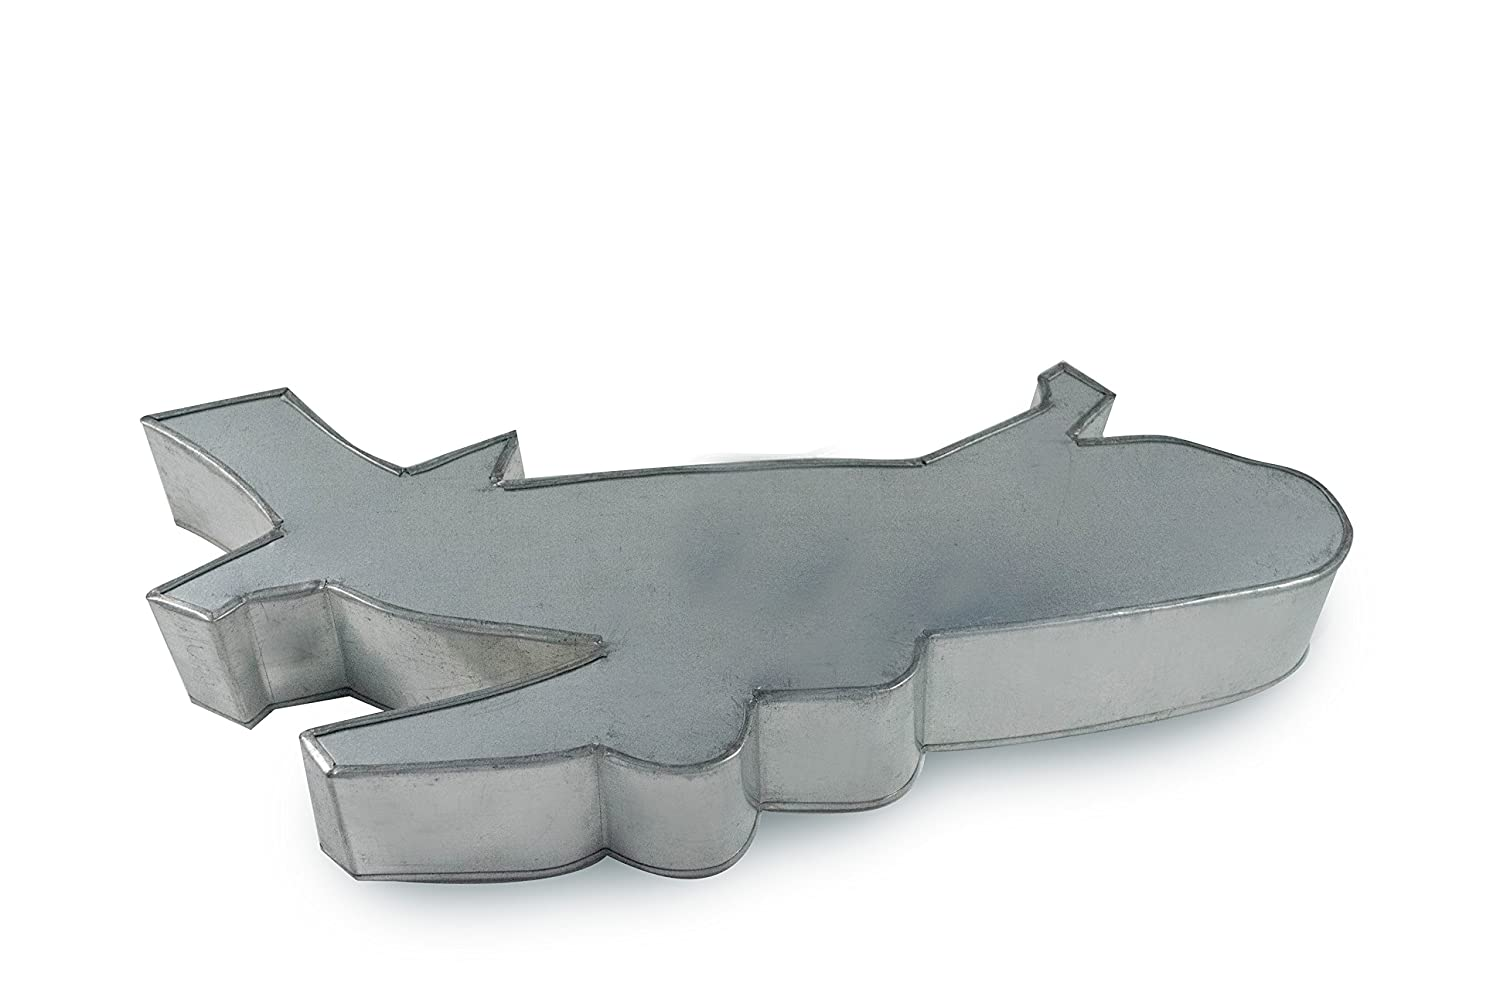 Aeroplane Shape Cake Tin Pan for Birthday Novelty Fun Cake Mould EURO TINS CT320A